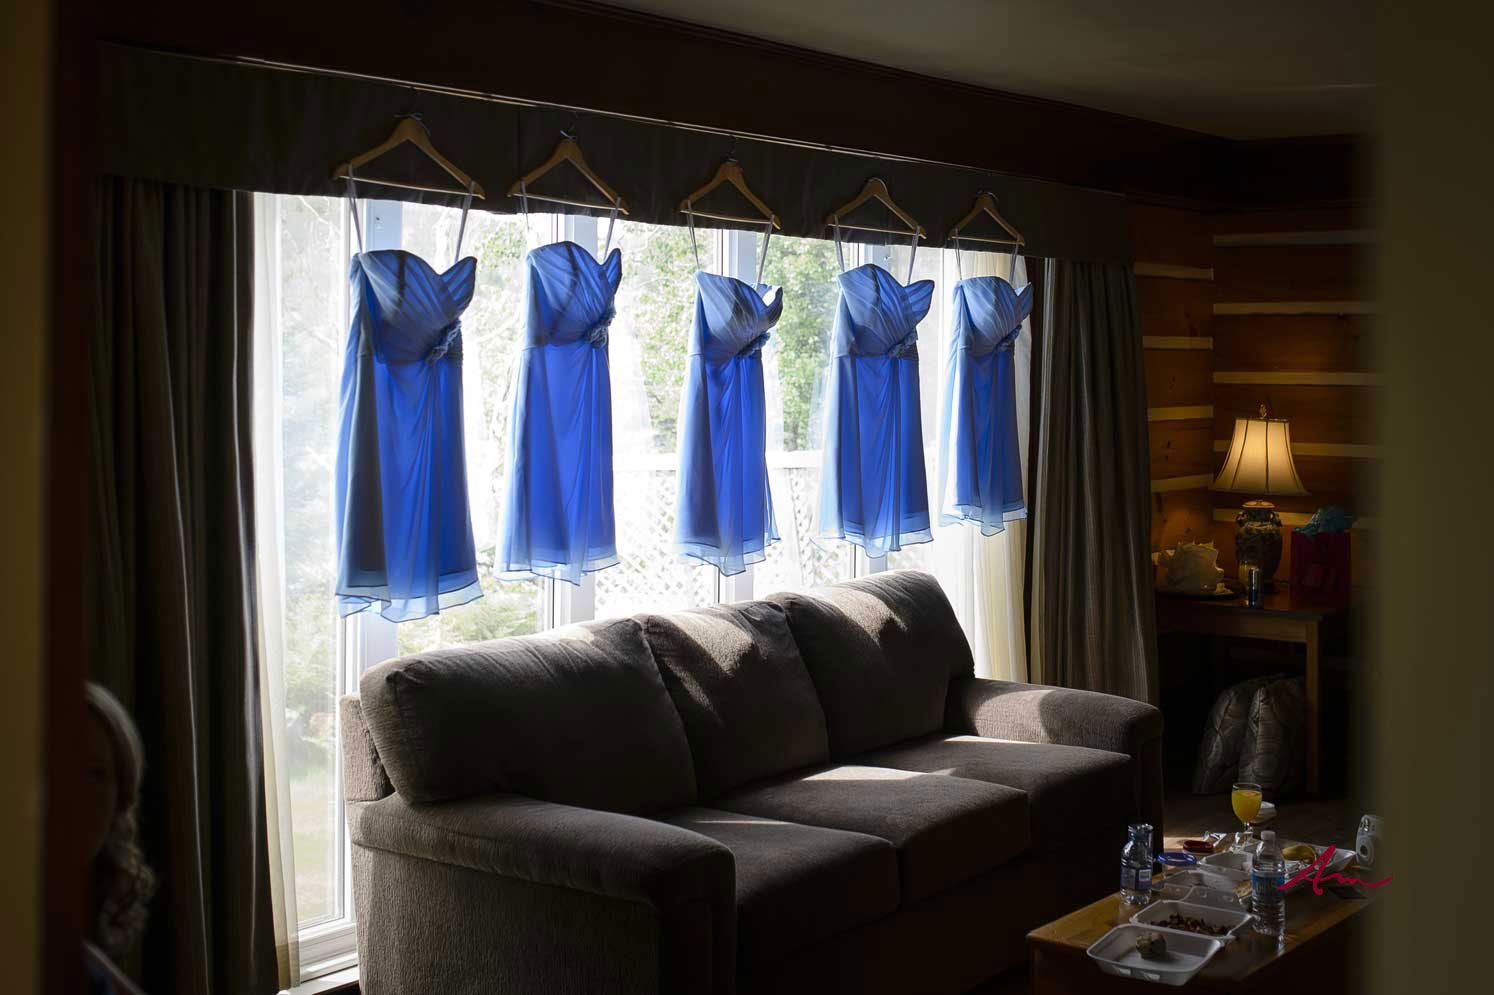 Liscombe-wedding-bridesmaids-dresses.jpg